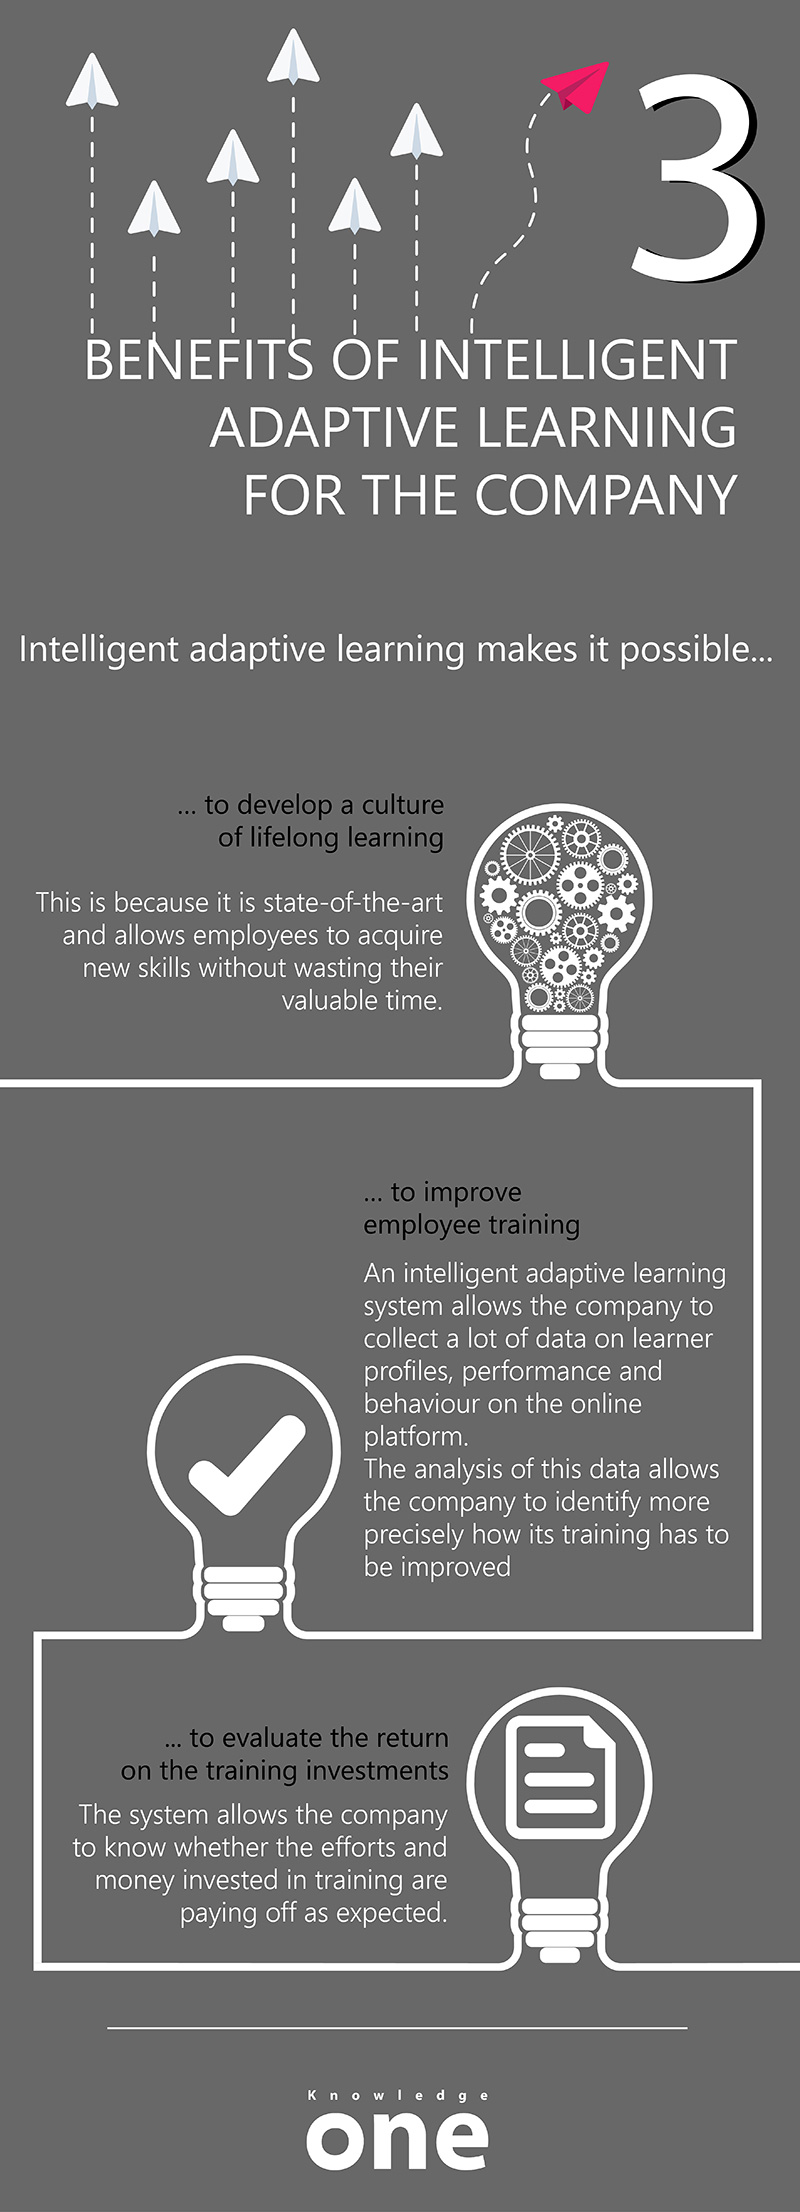 Infographic of 3 benefits of intelligent adaptive learning for the company